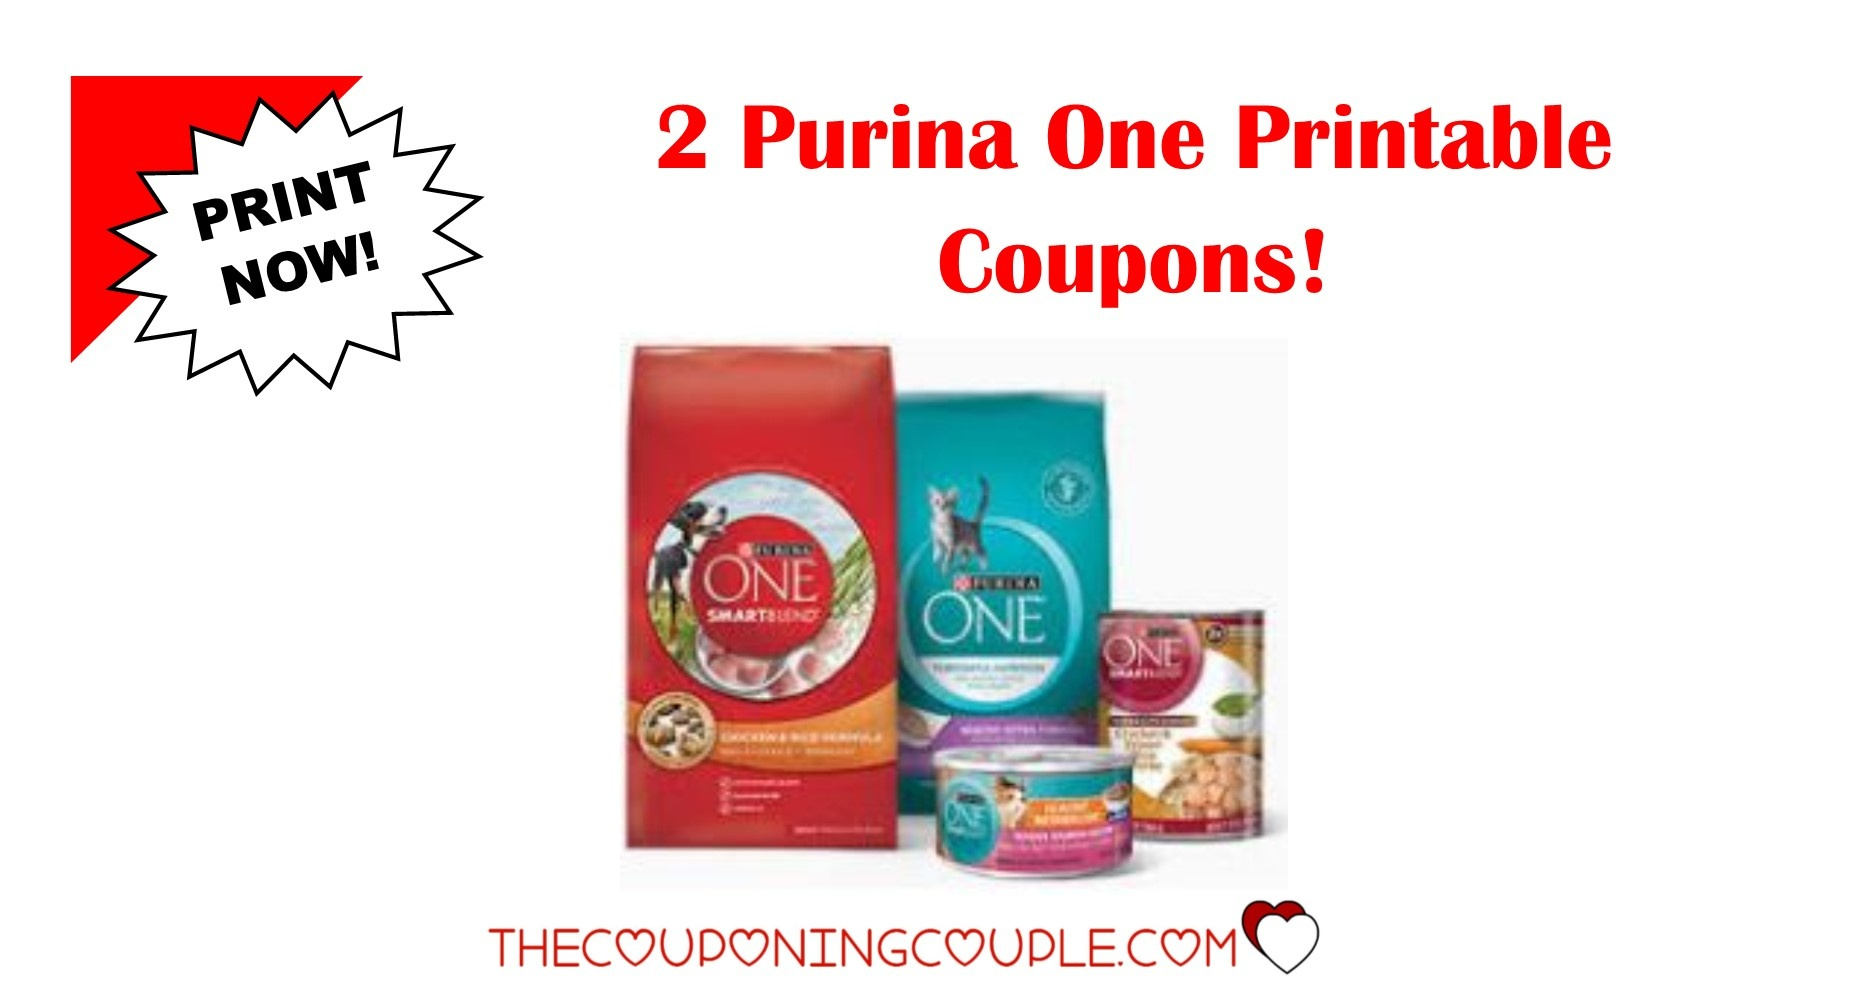 2 Purina One Printable Coupons ~ Both Coupons Are B1G1! - Free Printable Coupons For Purina One Dog Food